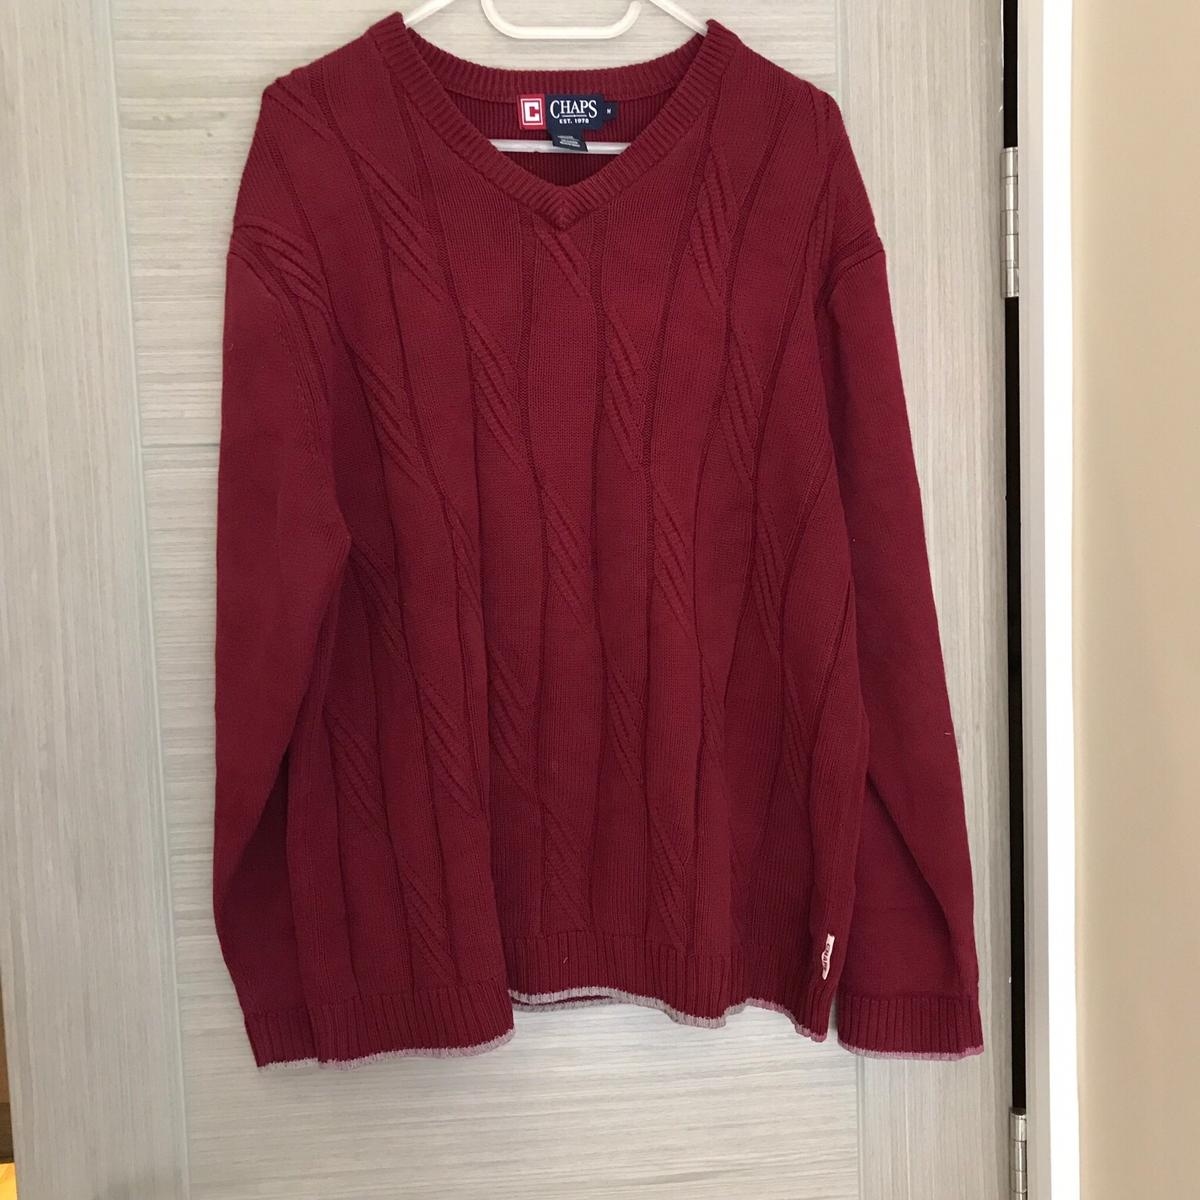 903b55fd4ab11b Vintage Chaps Ralph Lauren Red Jumper M in W6 London for £19.99 for ...